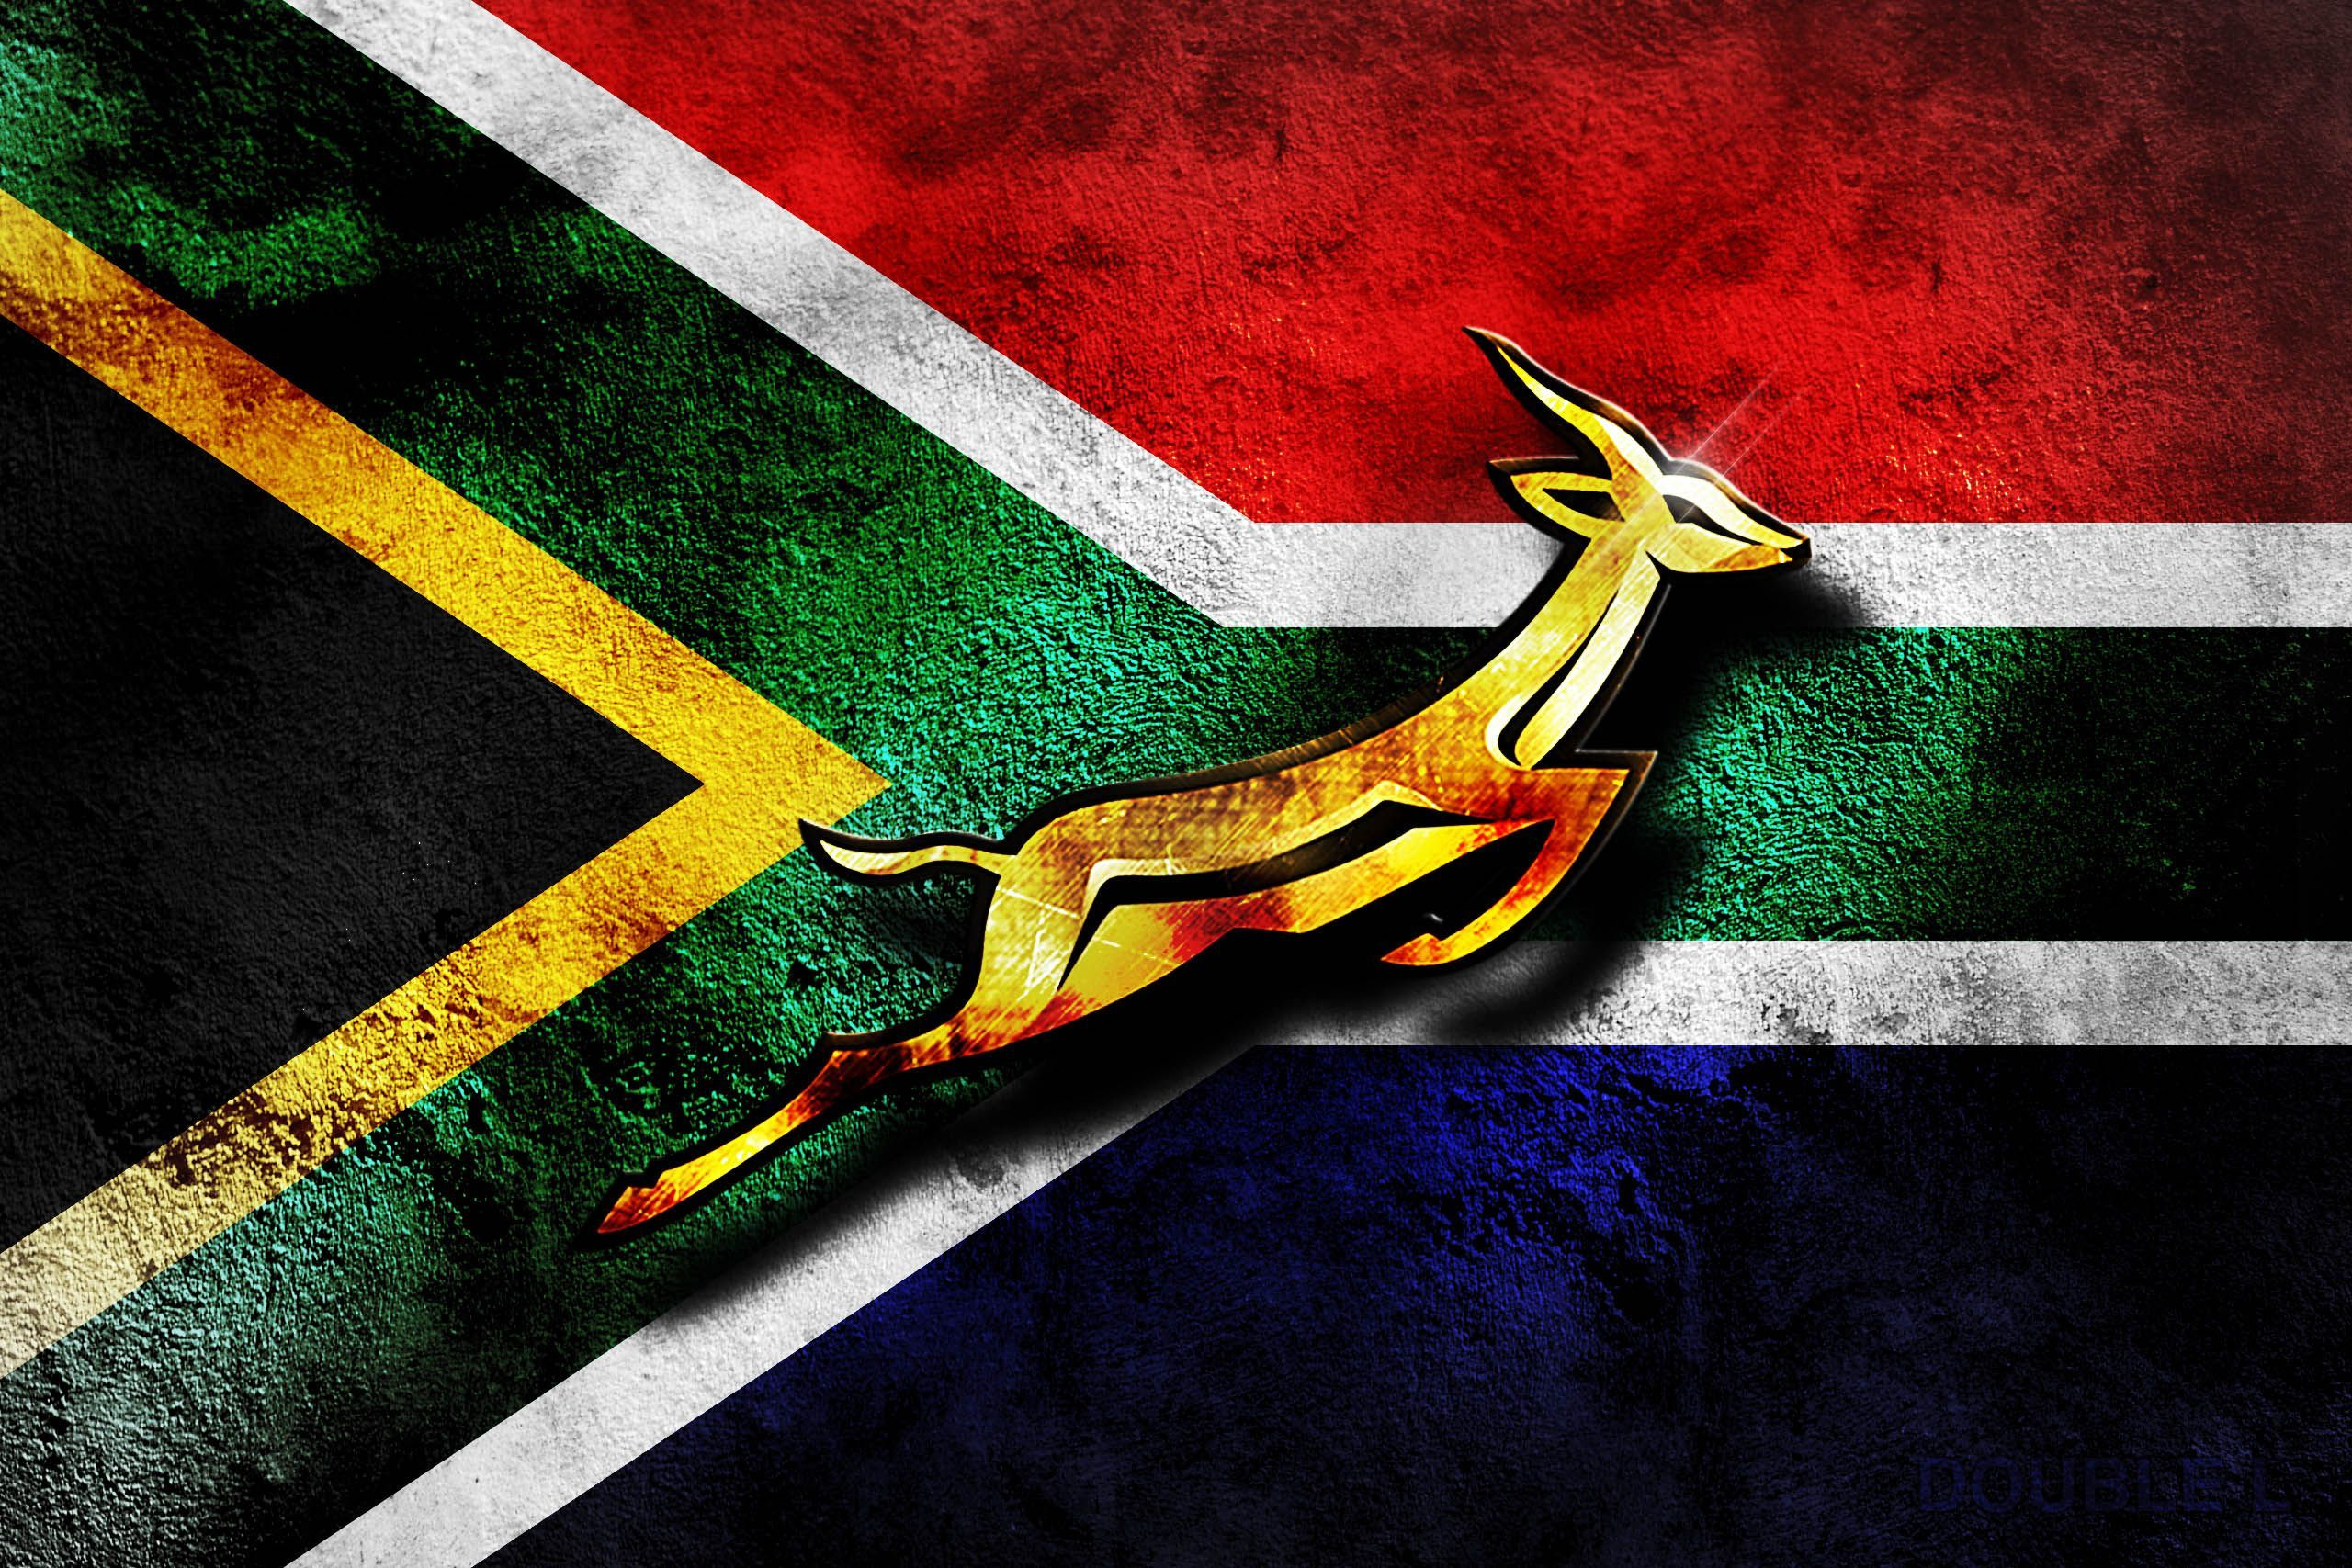 2560x1707 Flag of South Africa Wallpapers (28 images) - DodoWallpaper.